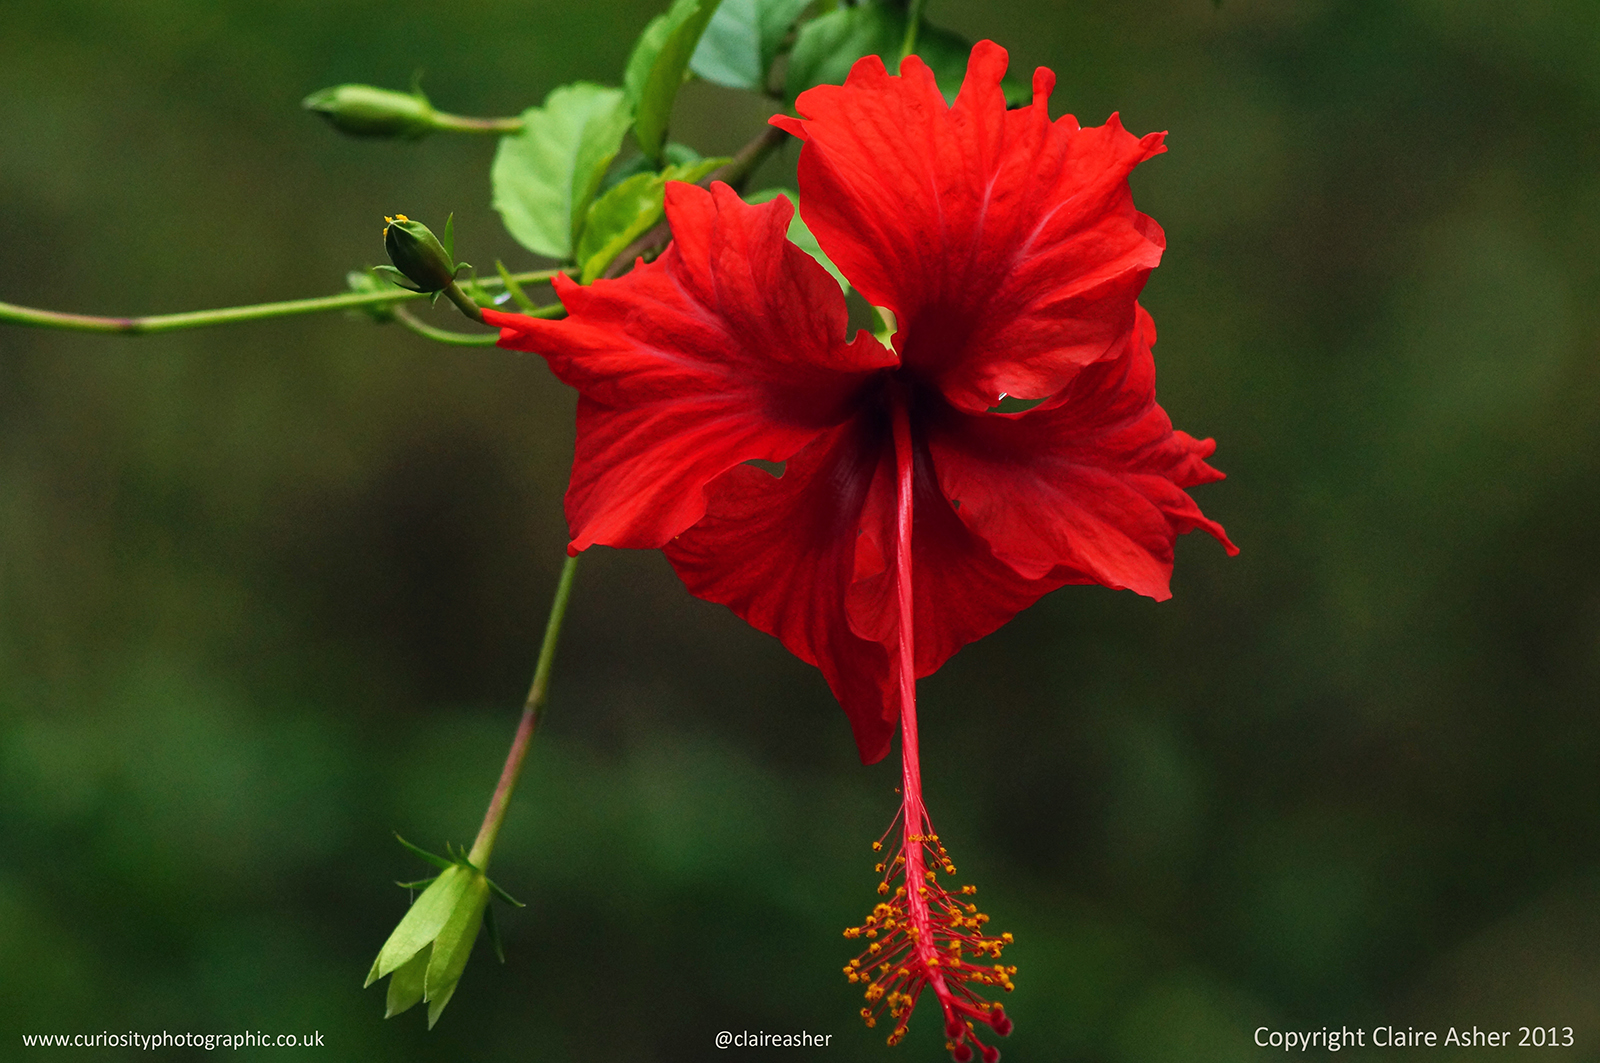 A Red Hibiscus flower (Hibiscus rosa-sinensis) photographed in Yangshuo, China in 2013